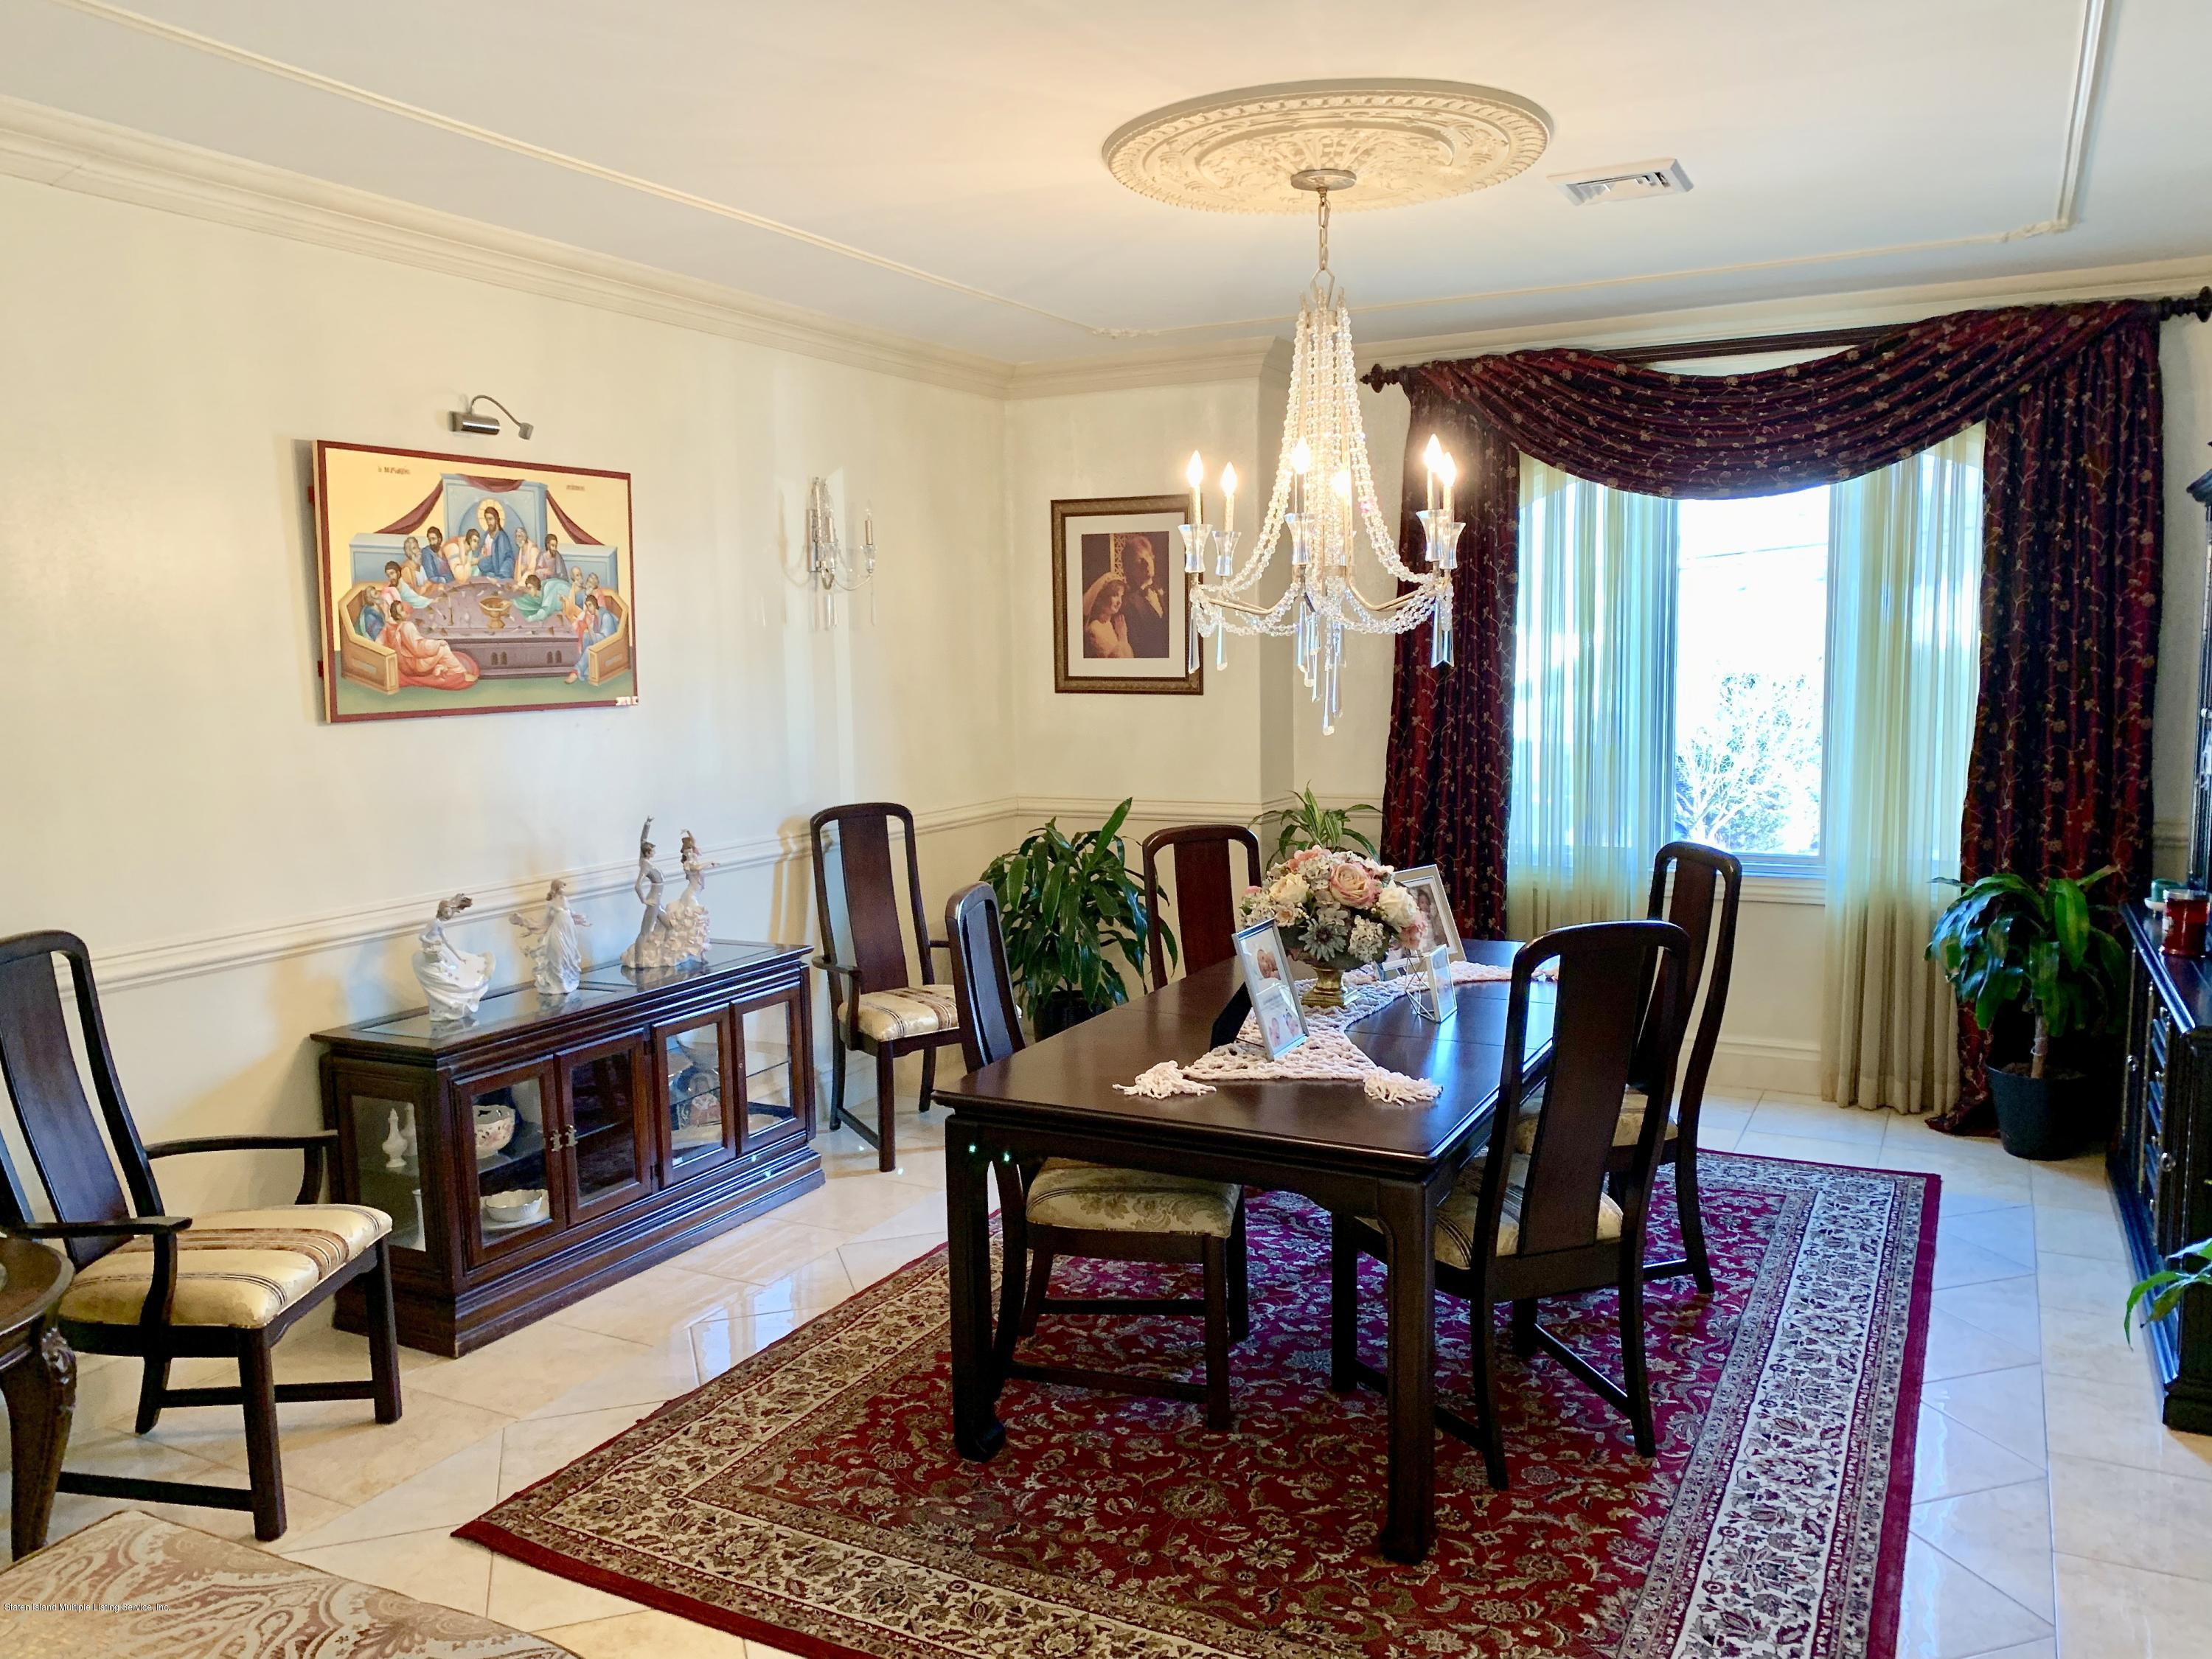 Single Family - Detached 107 Northern Boulevard  Staten Island, NY 10301, MLS-1124986-6